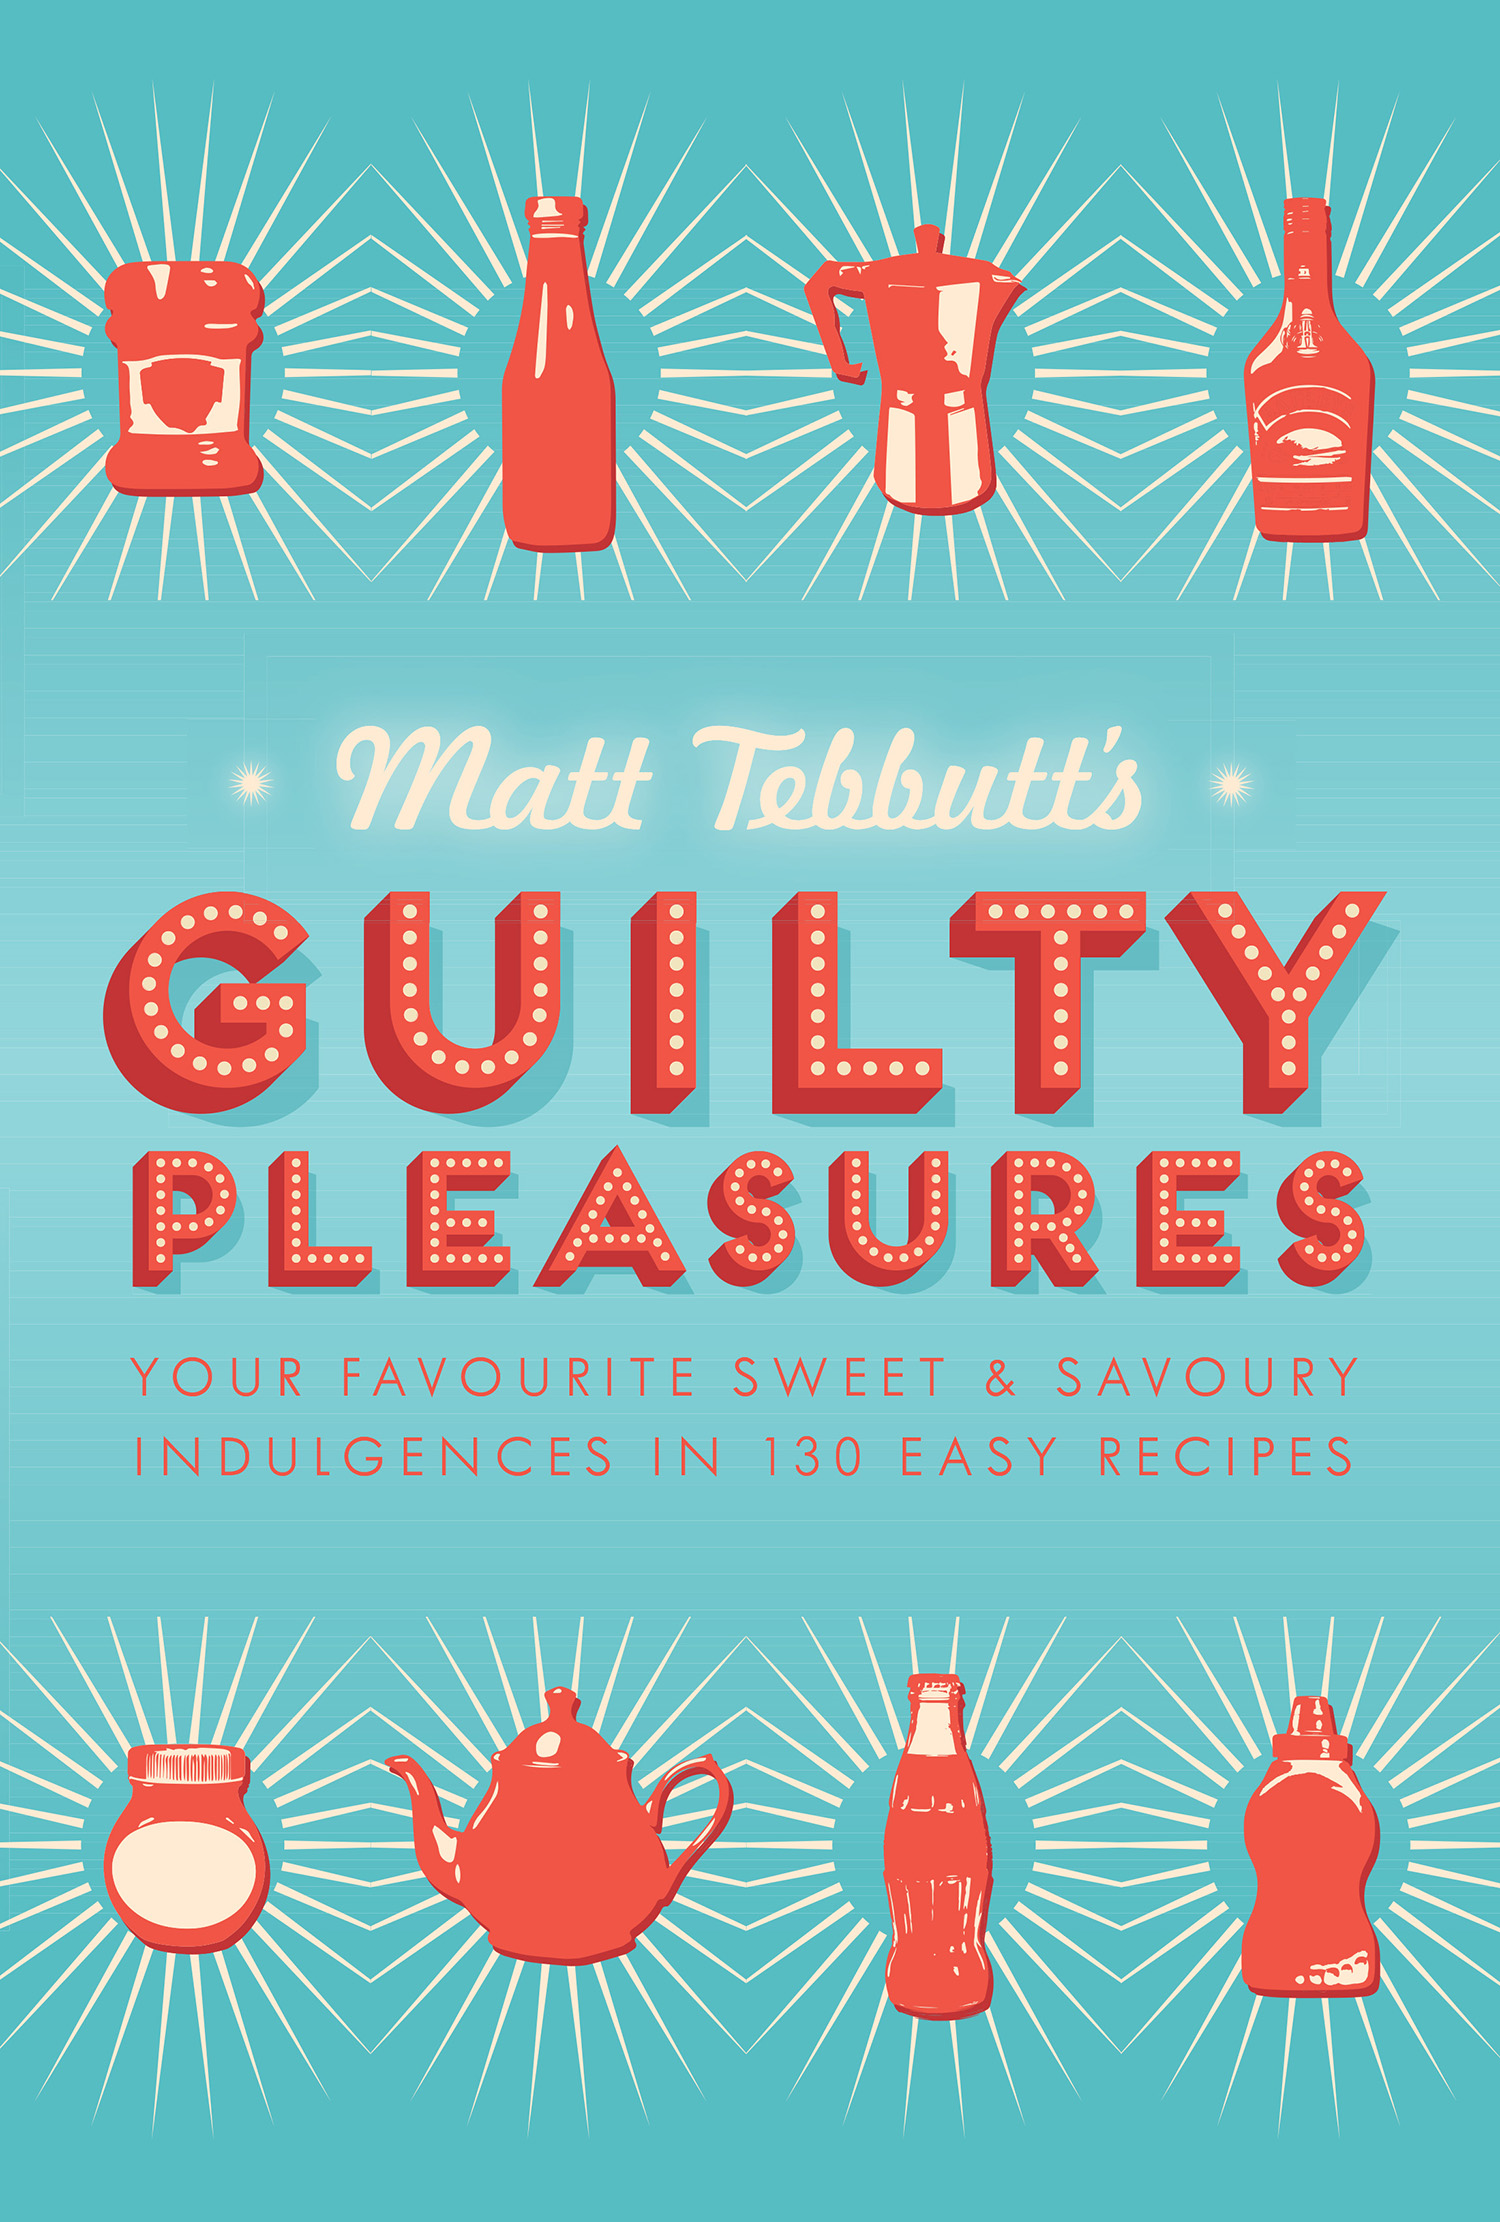 Matt Tebbutt's Guilty Pleasures Your Favourite Sweet and Savoury Indulgences in 130 Easy Recipes